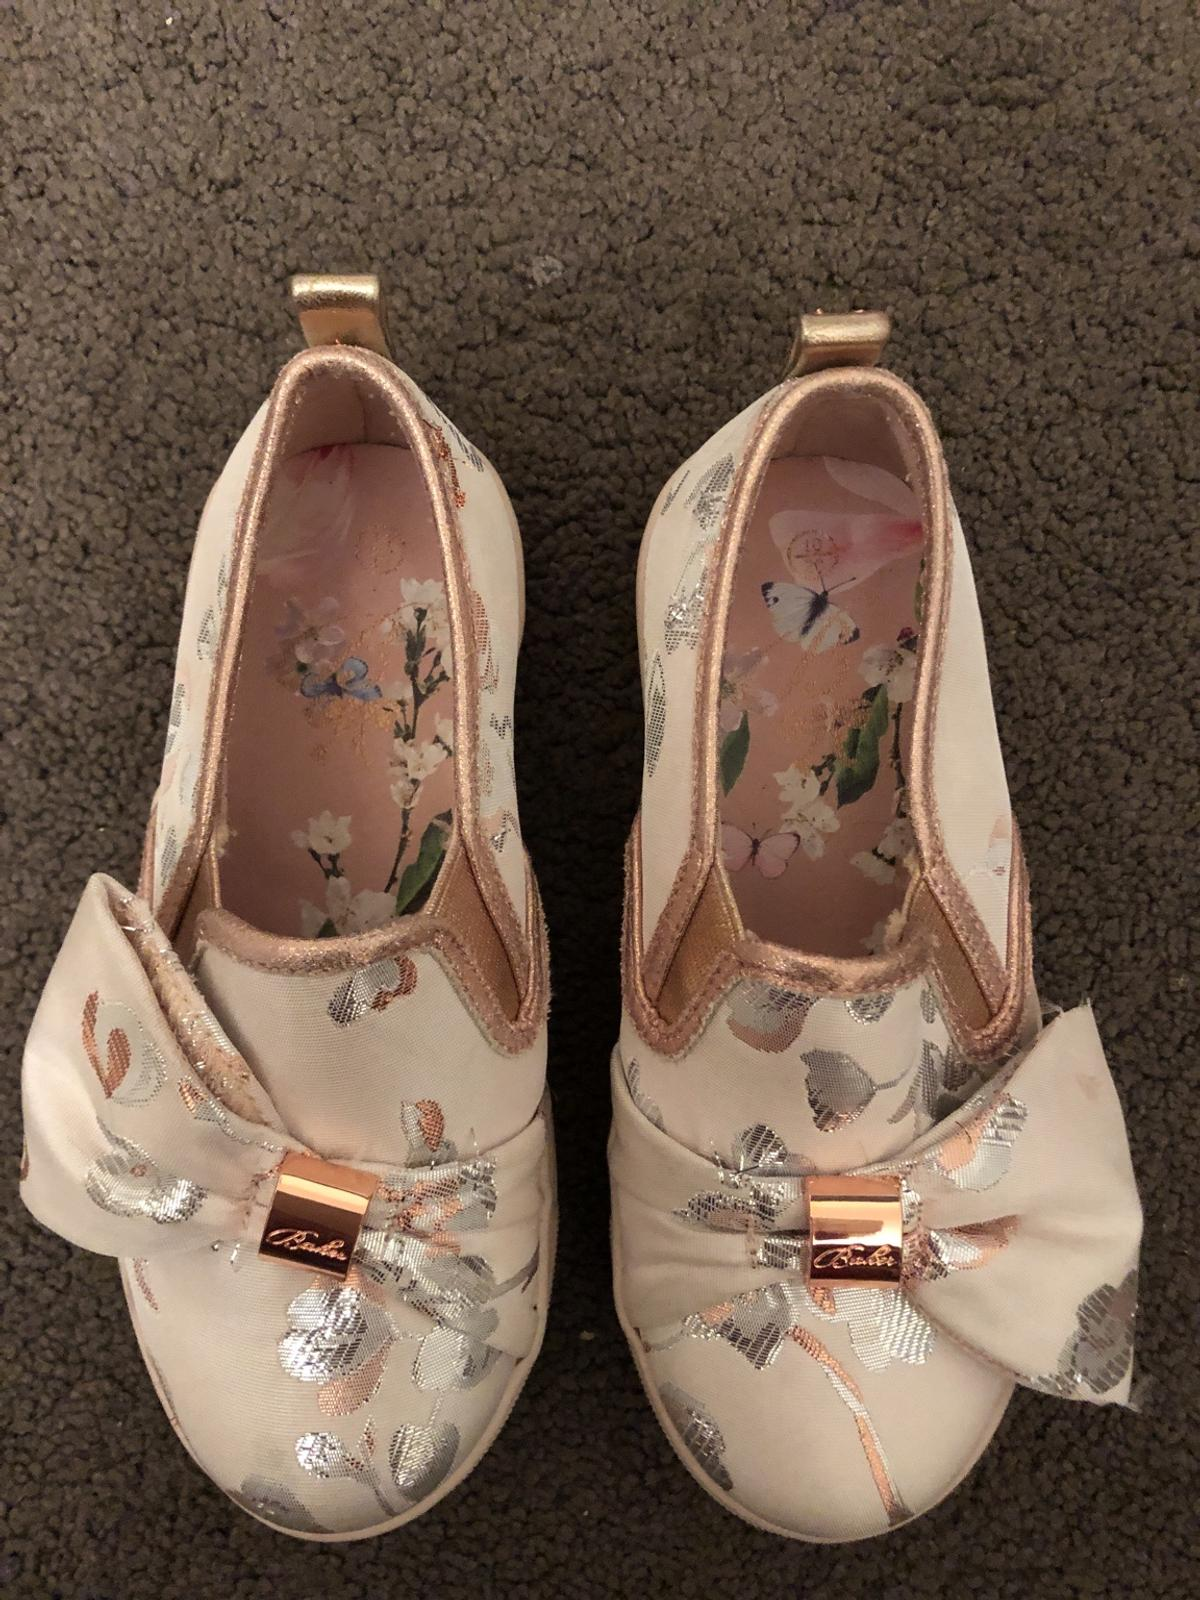 Children's size 10 ted baker pumps beeb worn twice